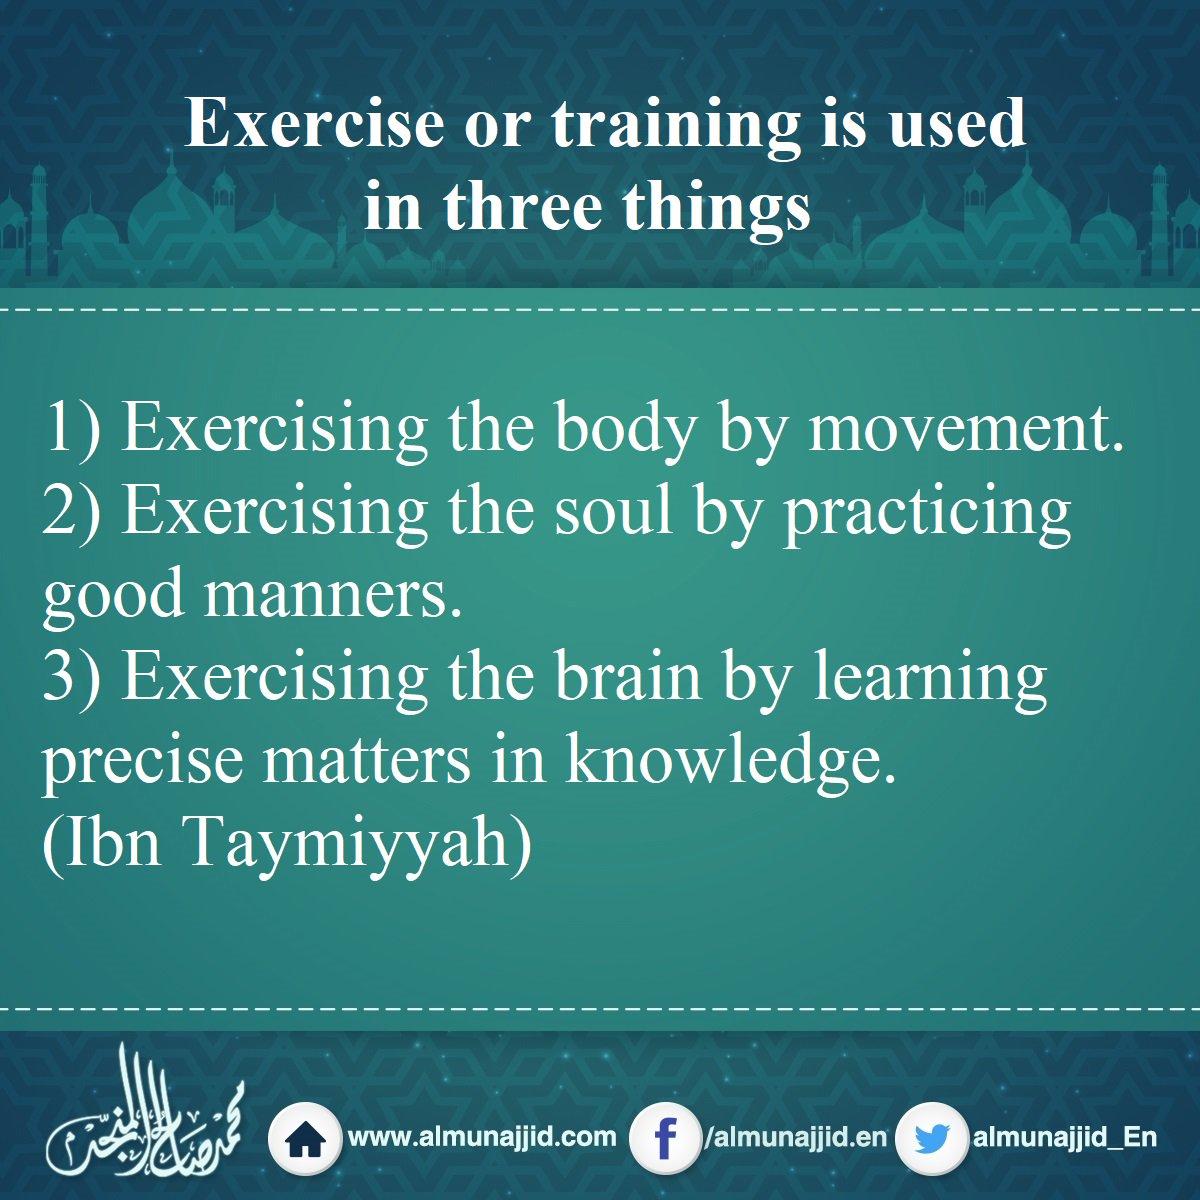 Exercise or training is used in three things #exercise #training #body #soul #brain<br>http://pic.twitter.com/YQptxAZNw9